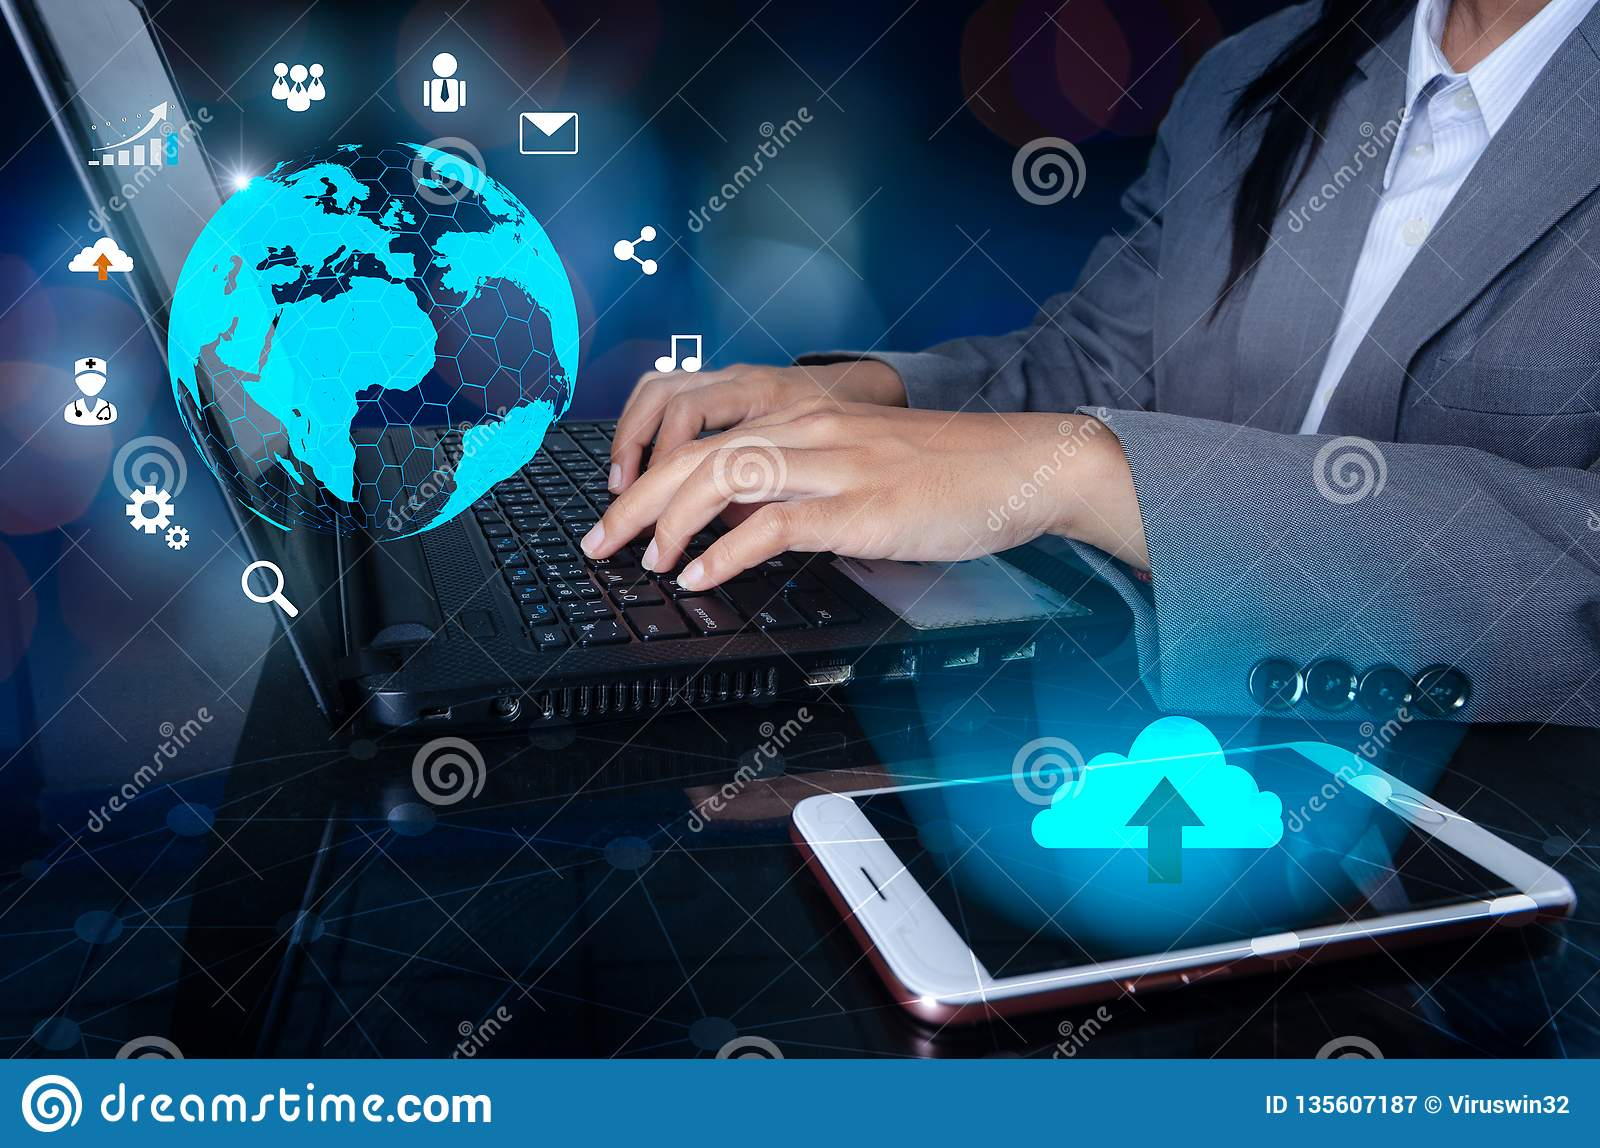 The phone has a cloud icon. Press enter button on the computer. business logistics Communication network World map send message Co